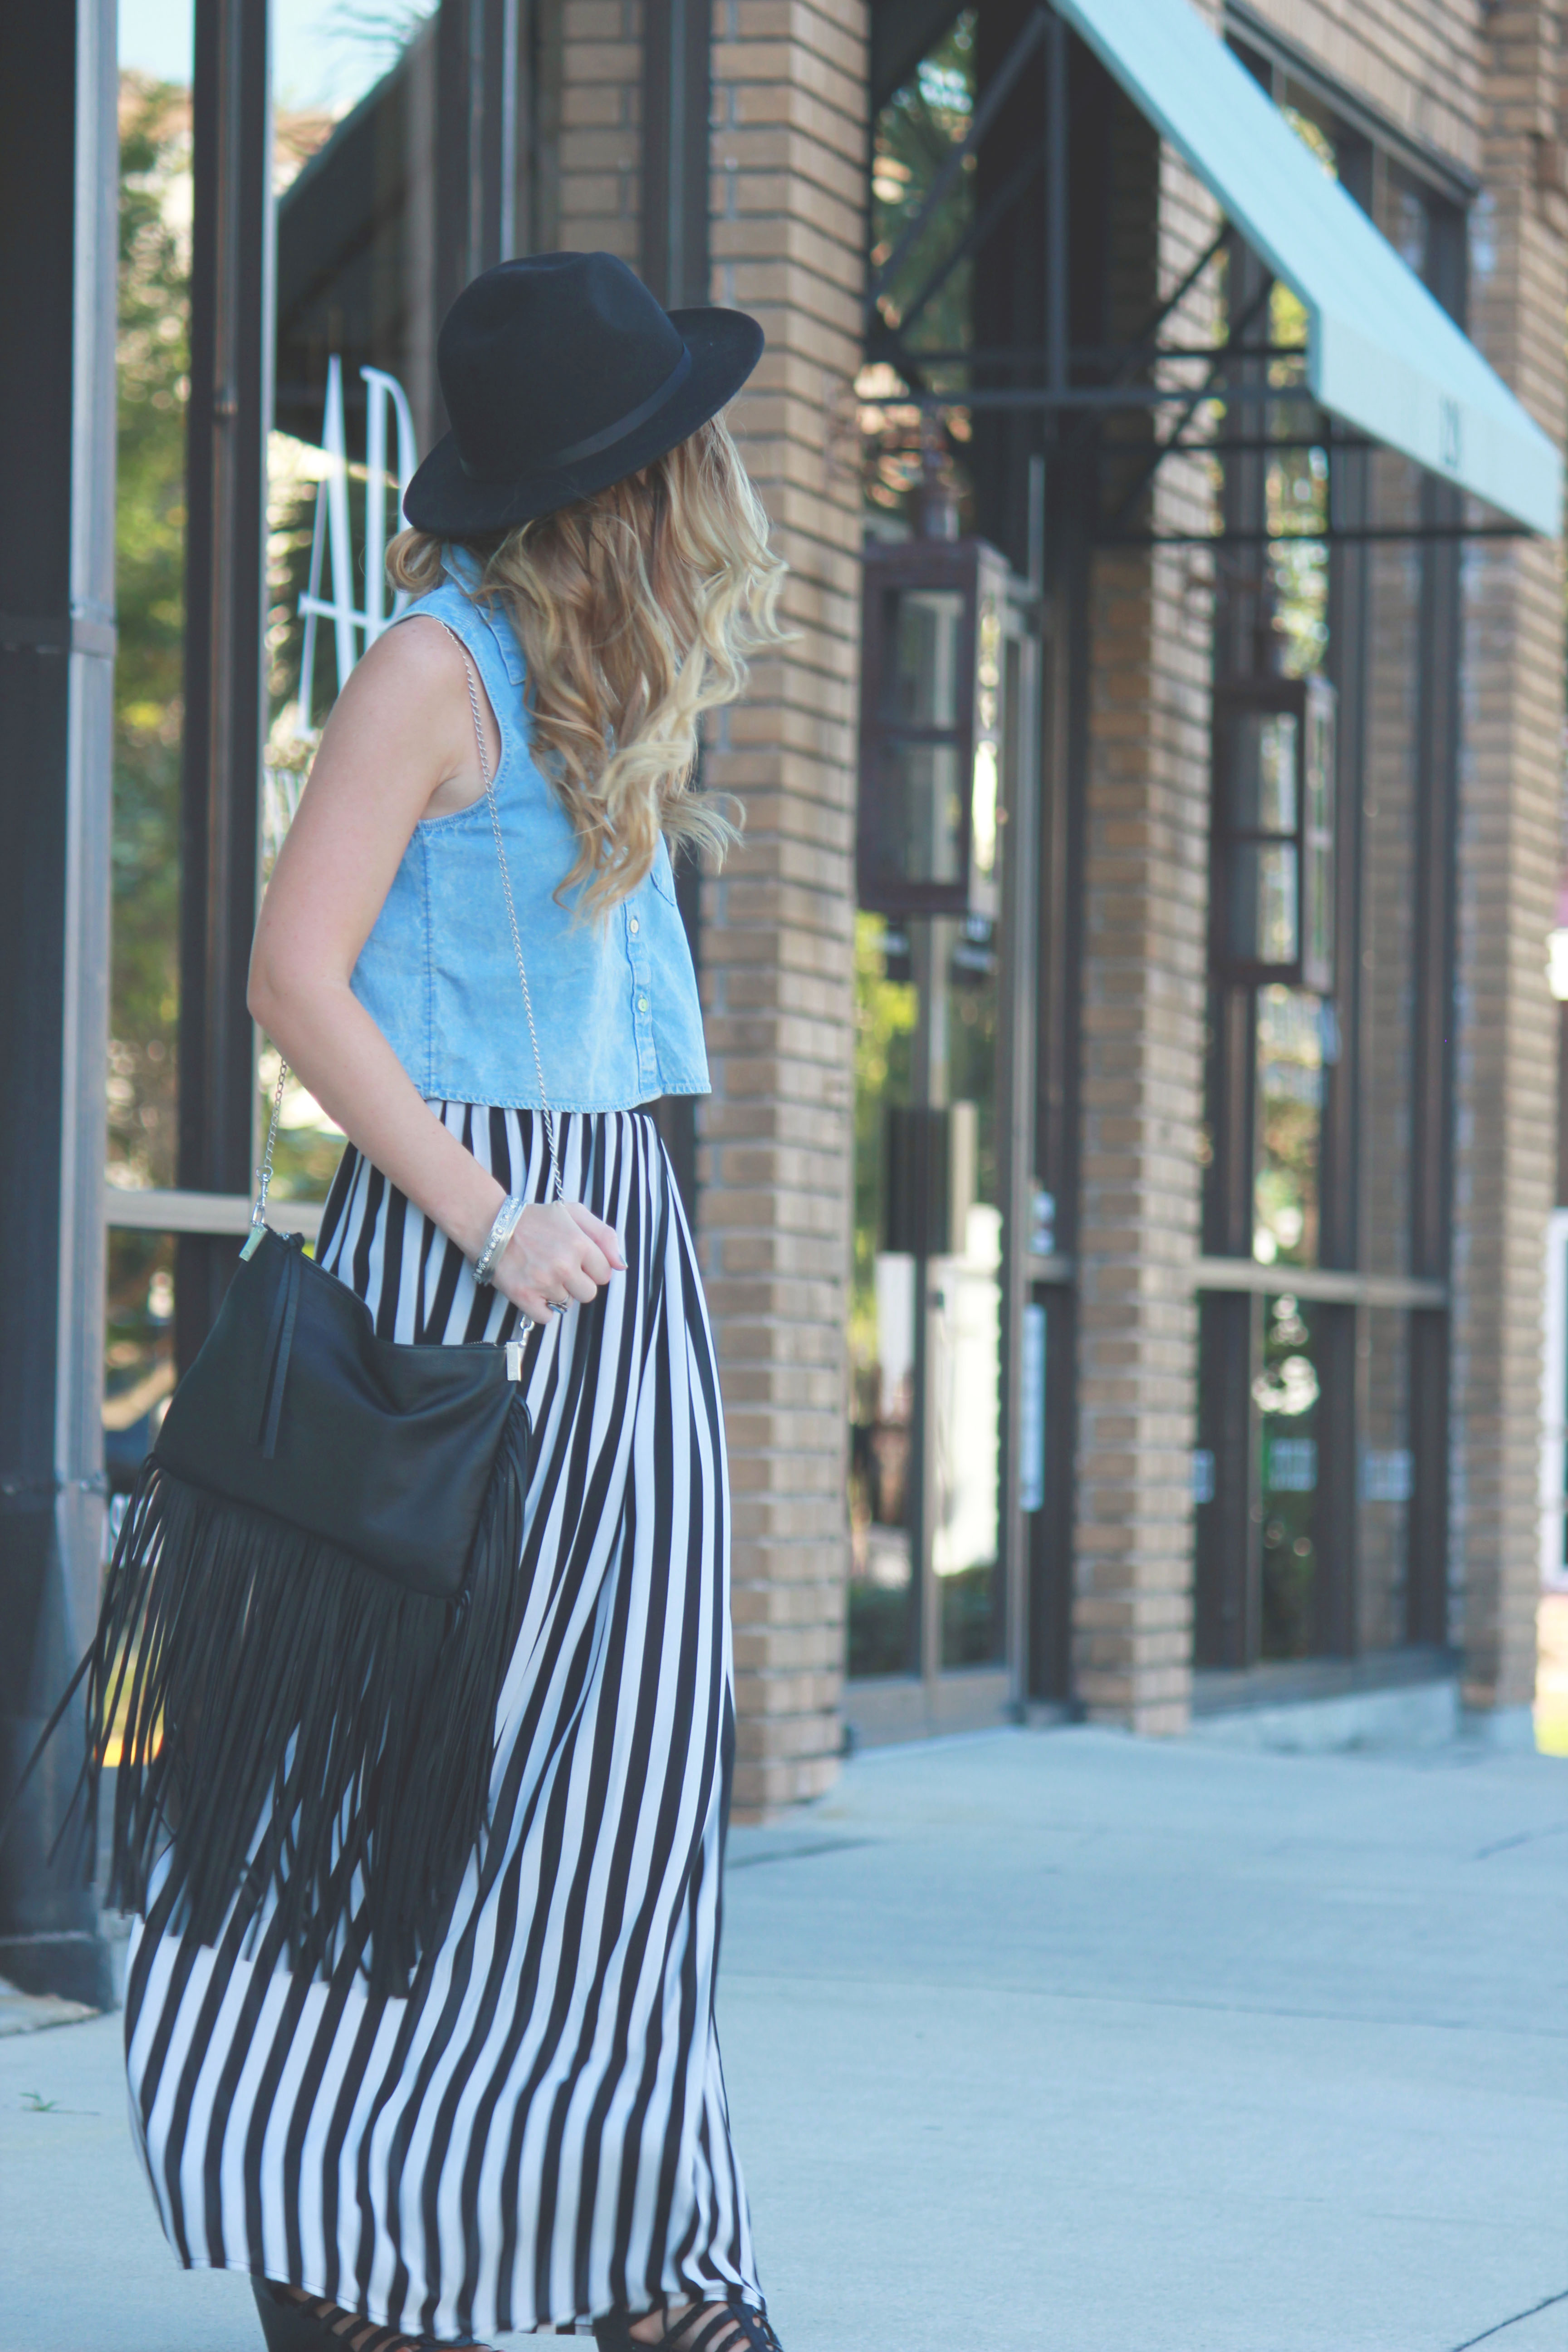 florida fashion blogger styles h&m chambray crop top, forever 21 maxi skirt, fringe purse, and fedora for a casual fall outfit